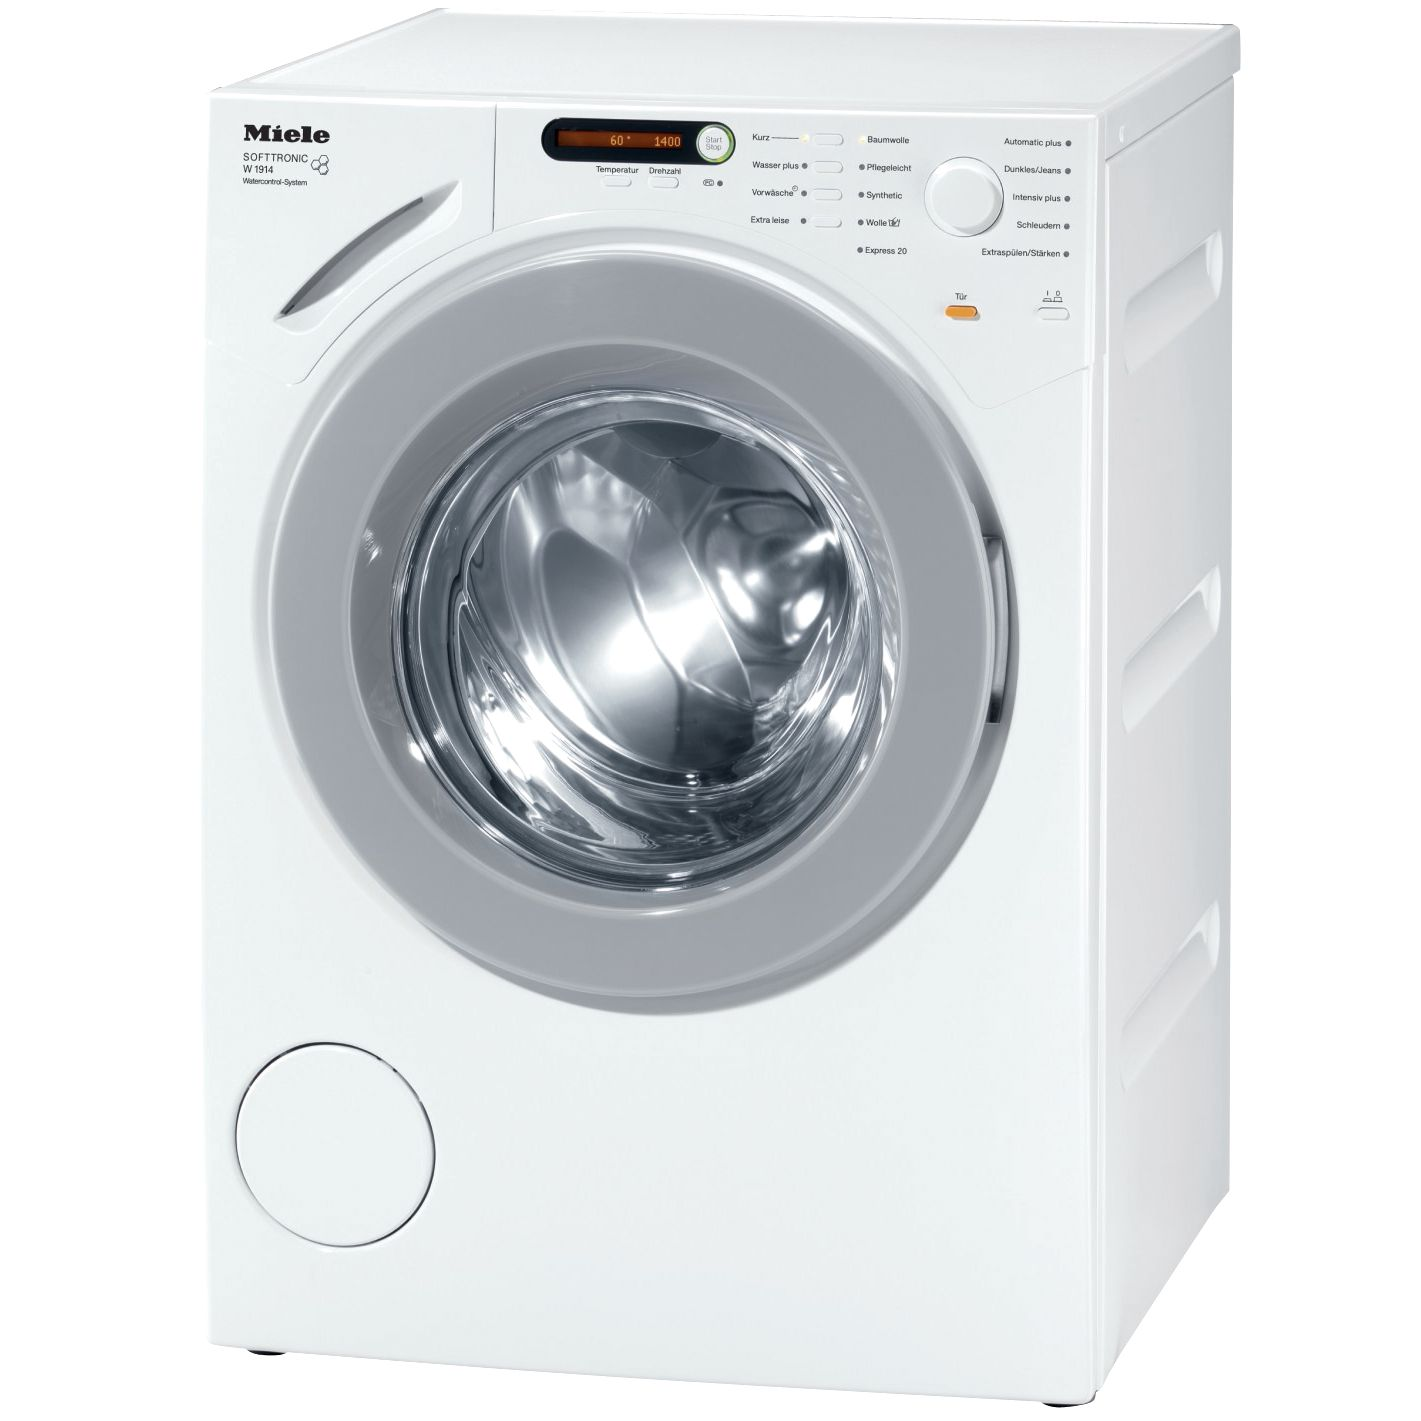 Miele W1916 Washing Machine, 7kg Load, A+++ Energy Rating, 1600rpm Spin, White